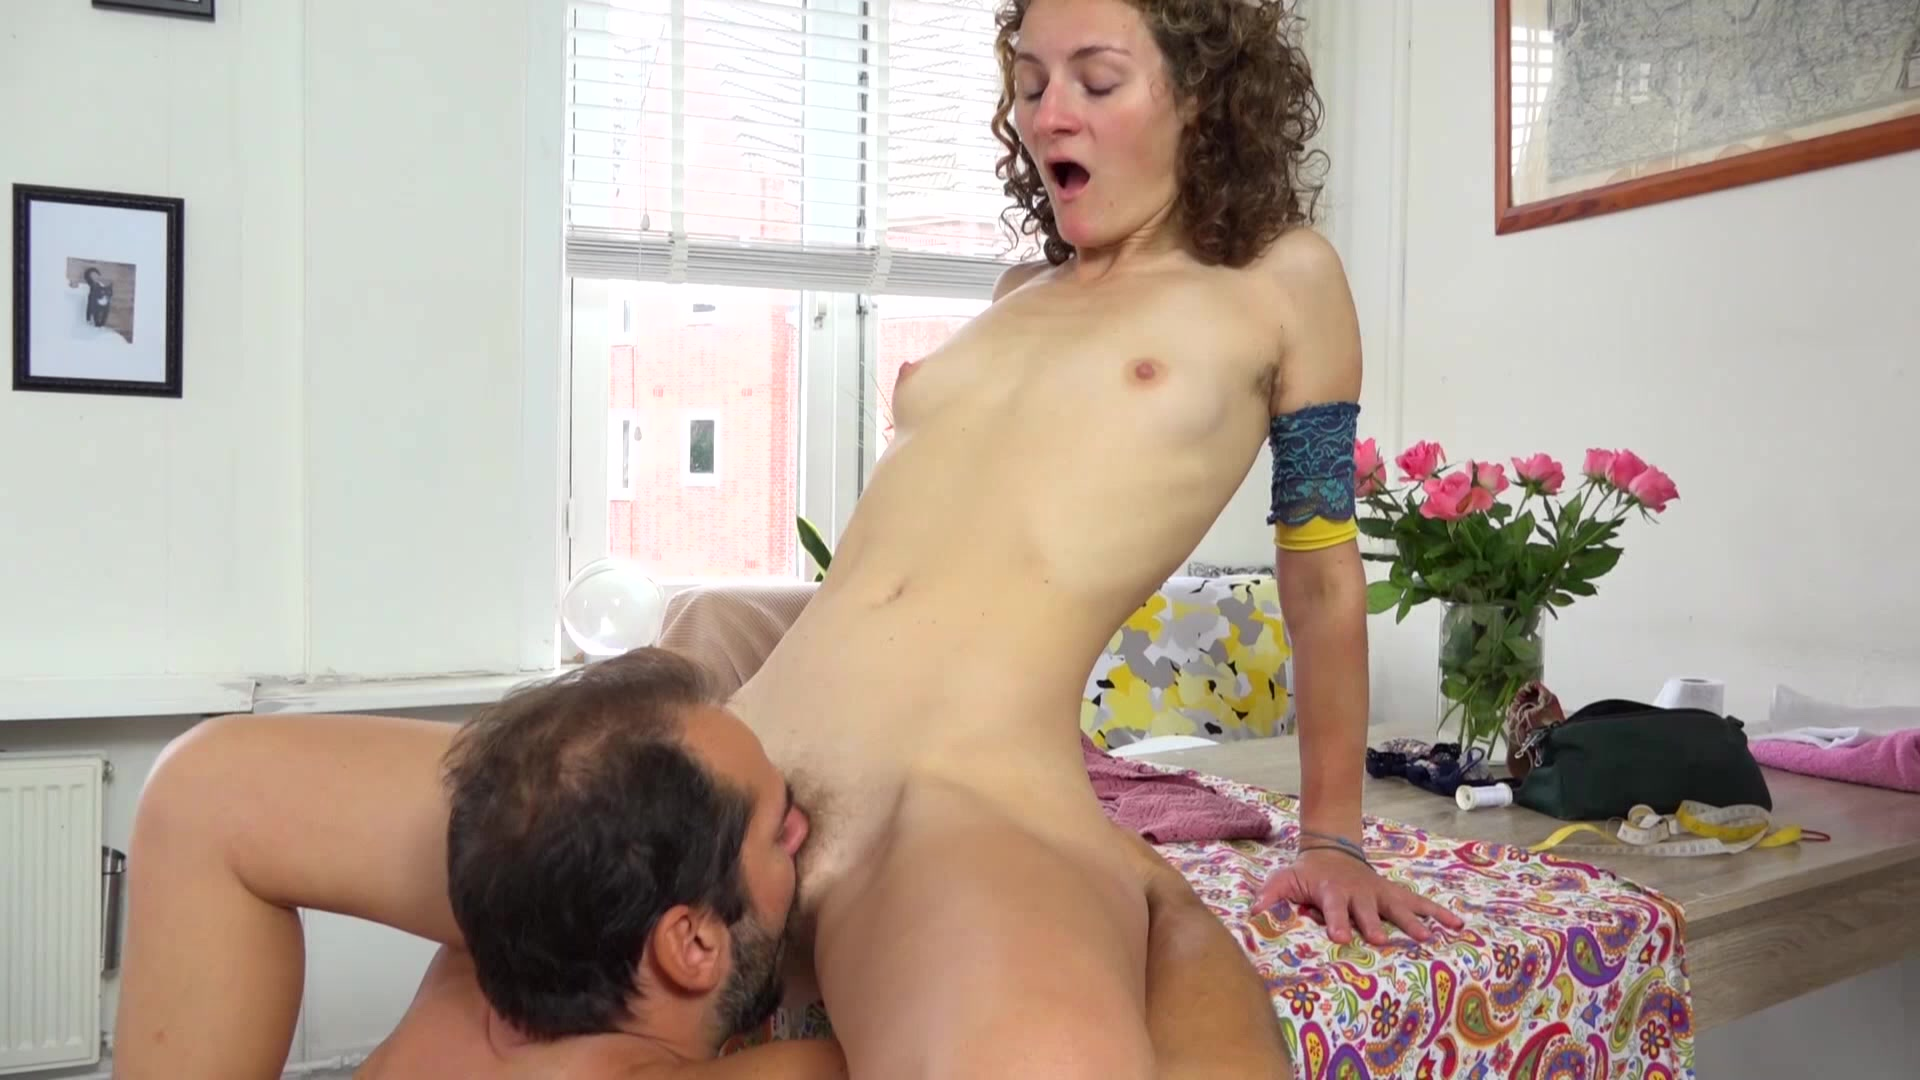 Abby Winters - Girls And Their Boys #38